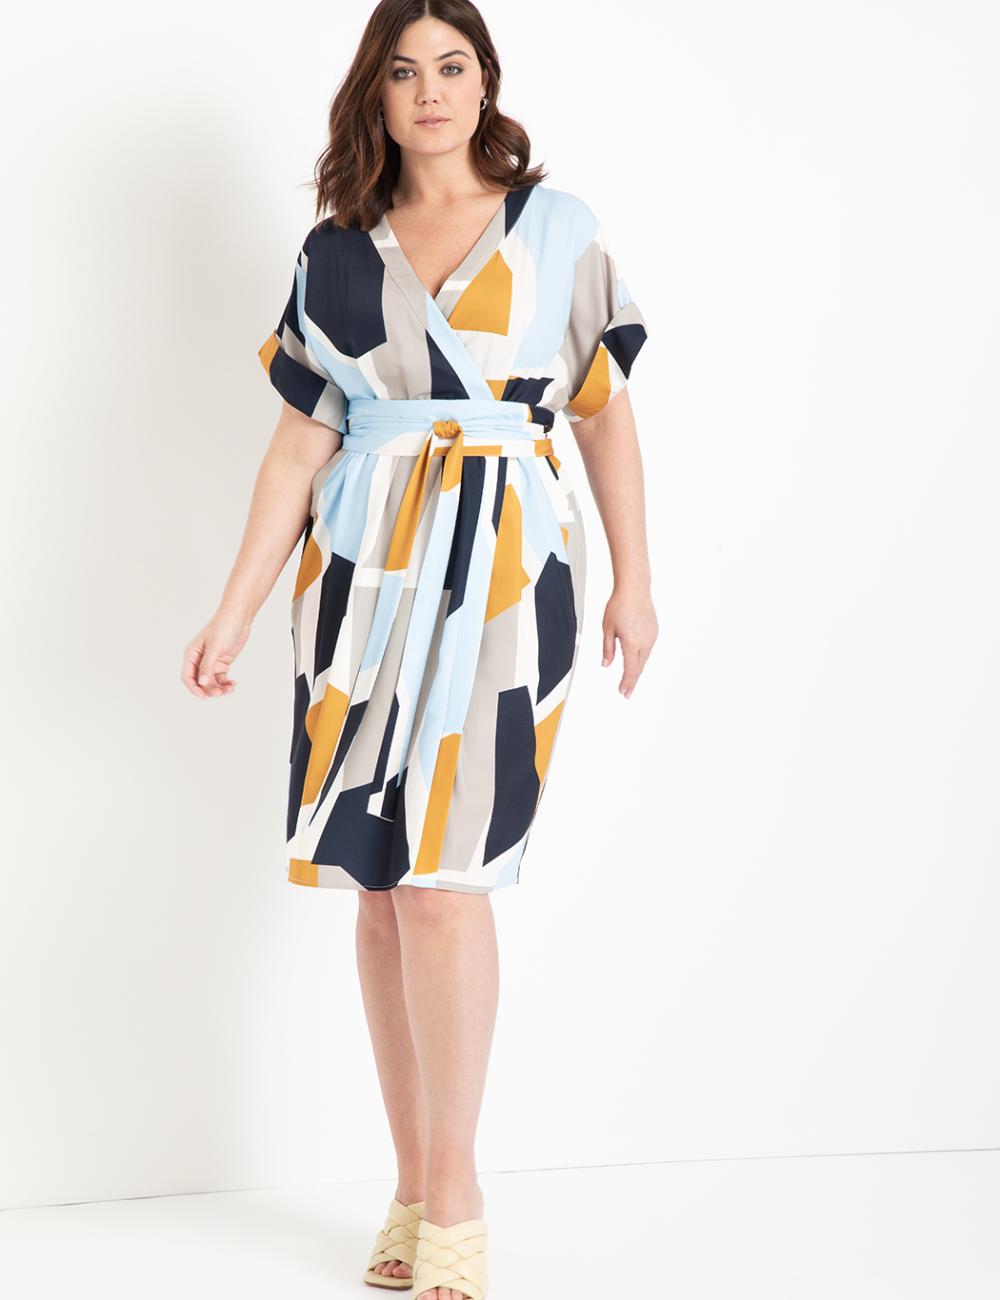 Easy Wrap Dress With Tie Detail Women S Plus Size Dresses Eloquii Plus Size Dresses Wrap Dress Plus Size Outfits [ 1300 x 1000 Pixel ]